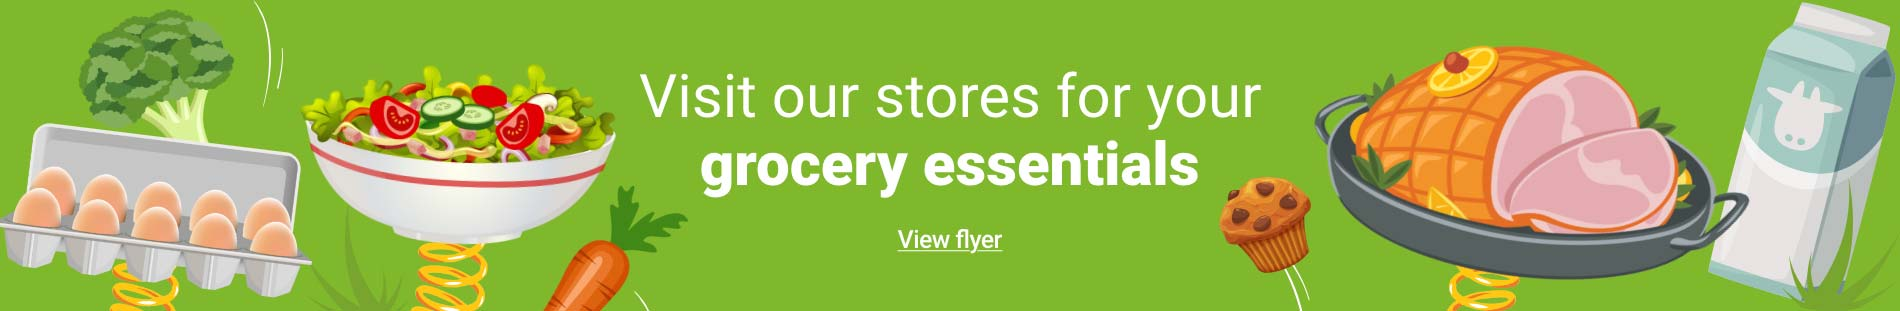 Visit our stores for your grocery essentials - View flyer